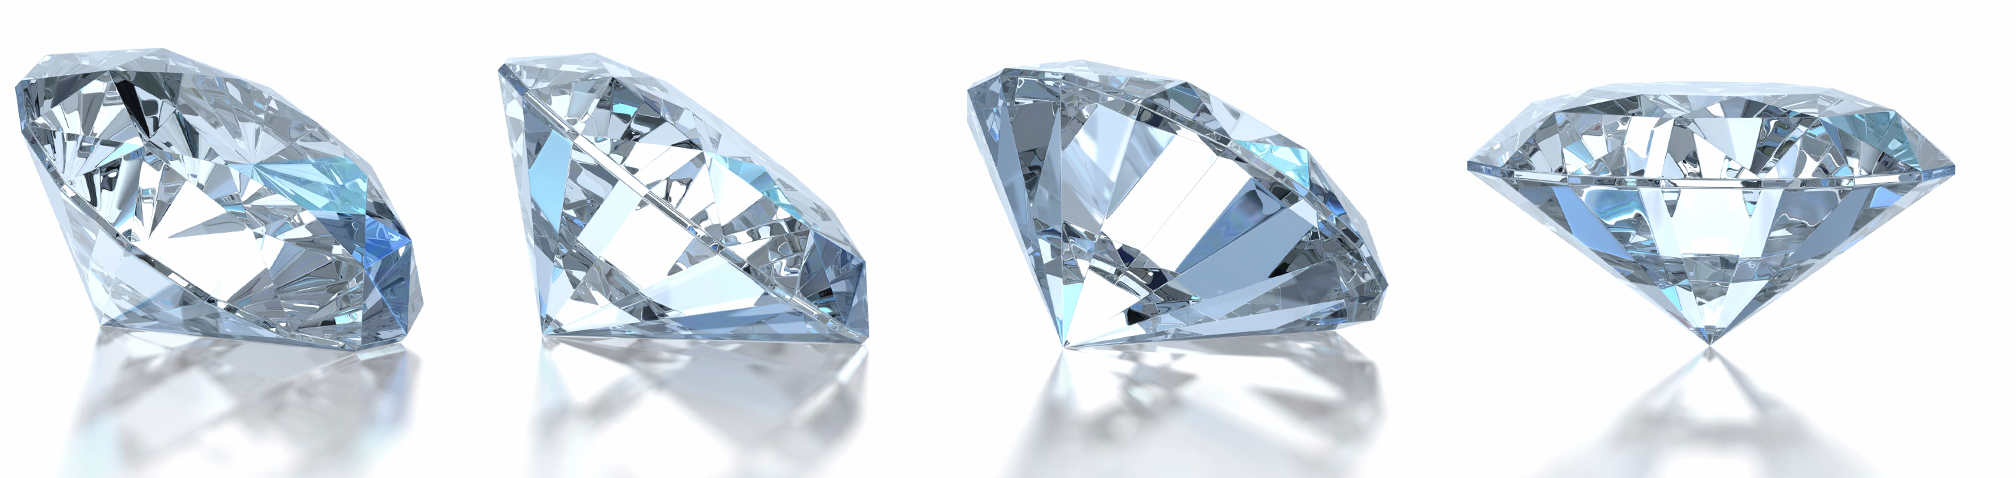 faq sell your diamond sell engagement ring sell jewelry